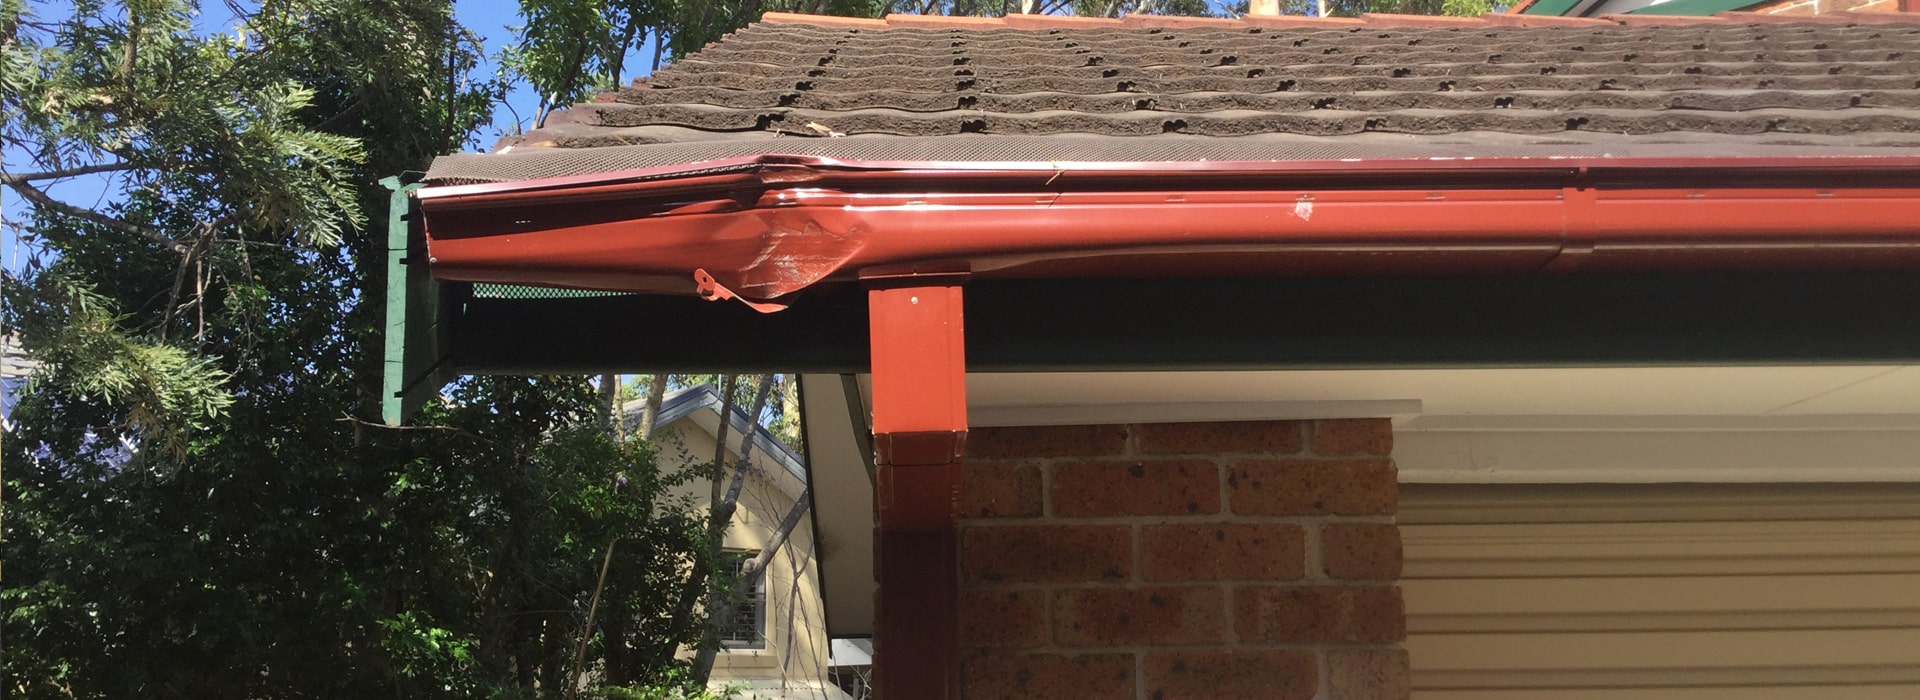 gutter-cleaning-slider